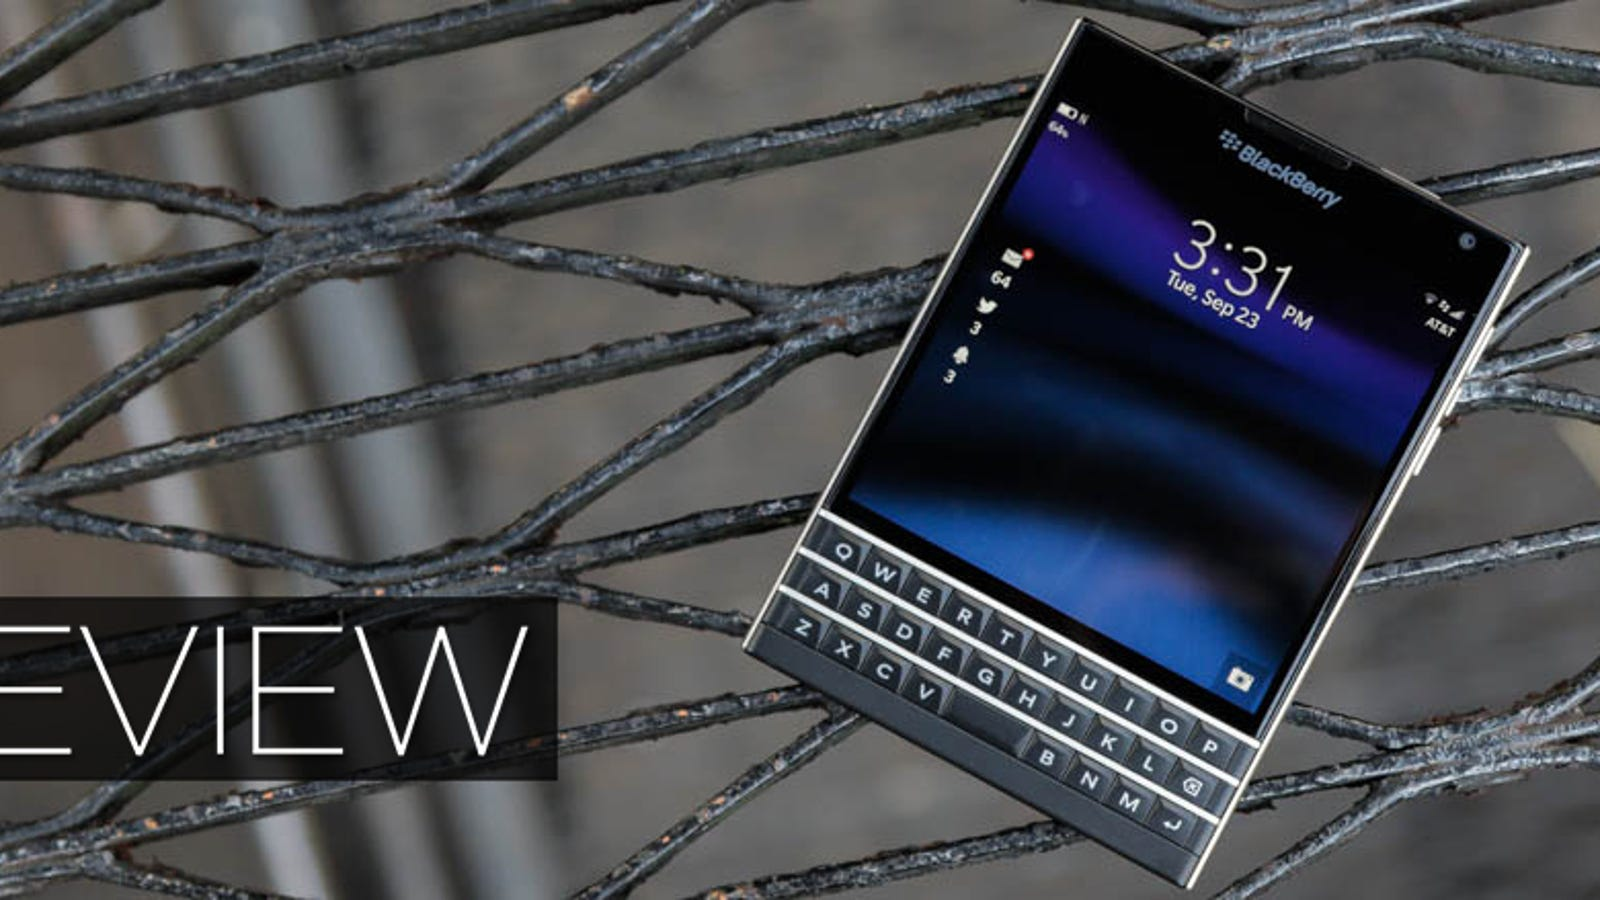 HOW TO INSTALL ANDROID APPS ON BLACKBERRY PASSPORT